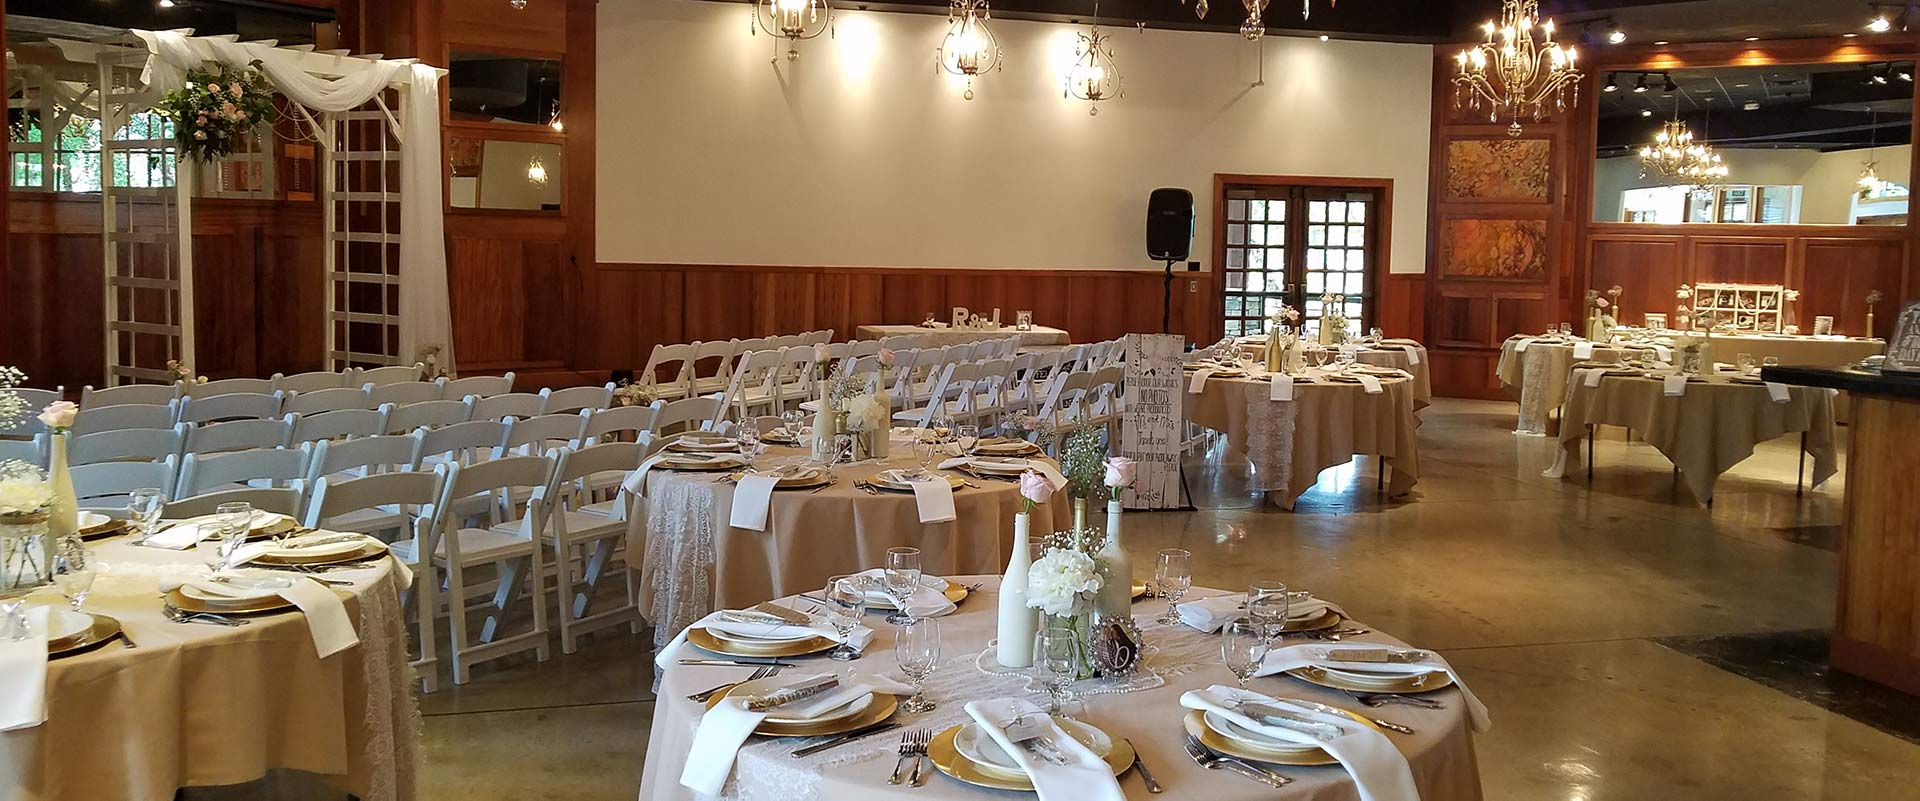 Partner With Professional Party Planners